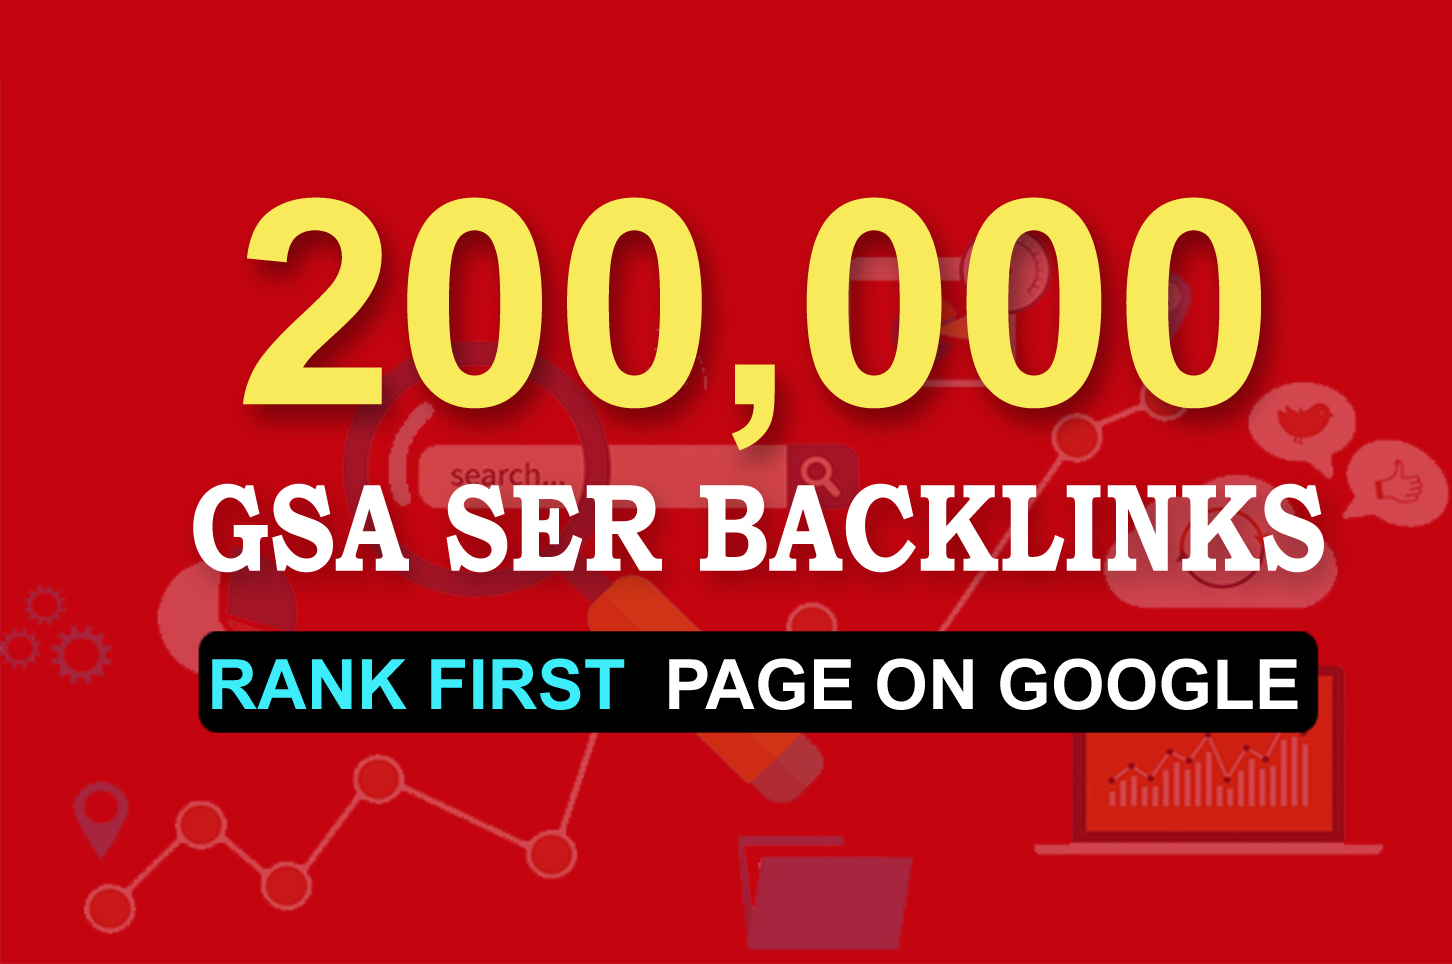 Get 1st page on Google by 200,000 GSA Ser Backlinks